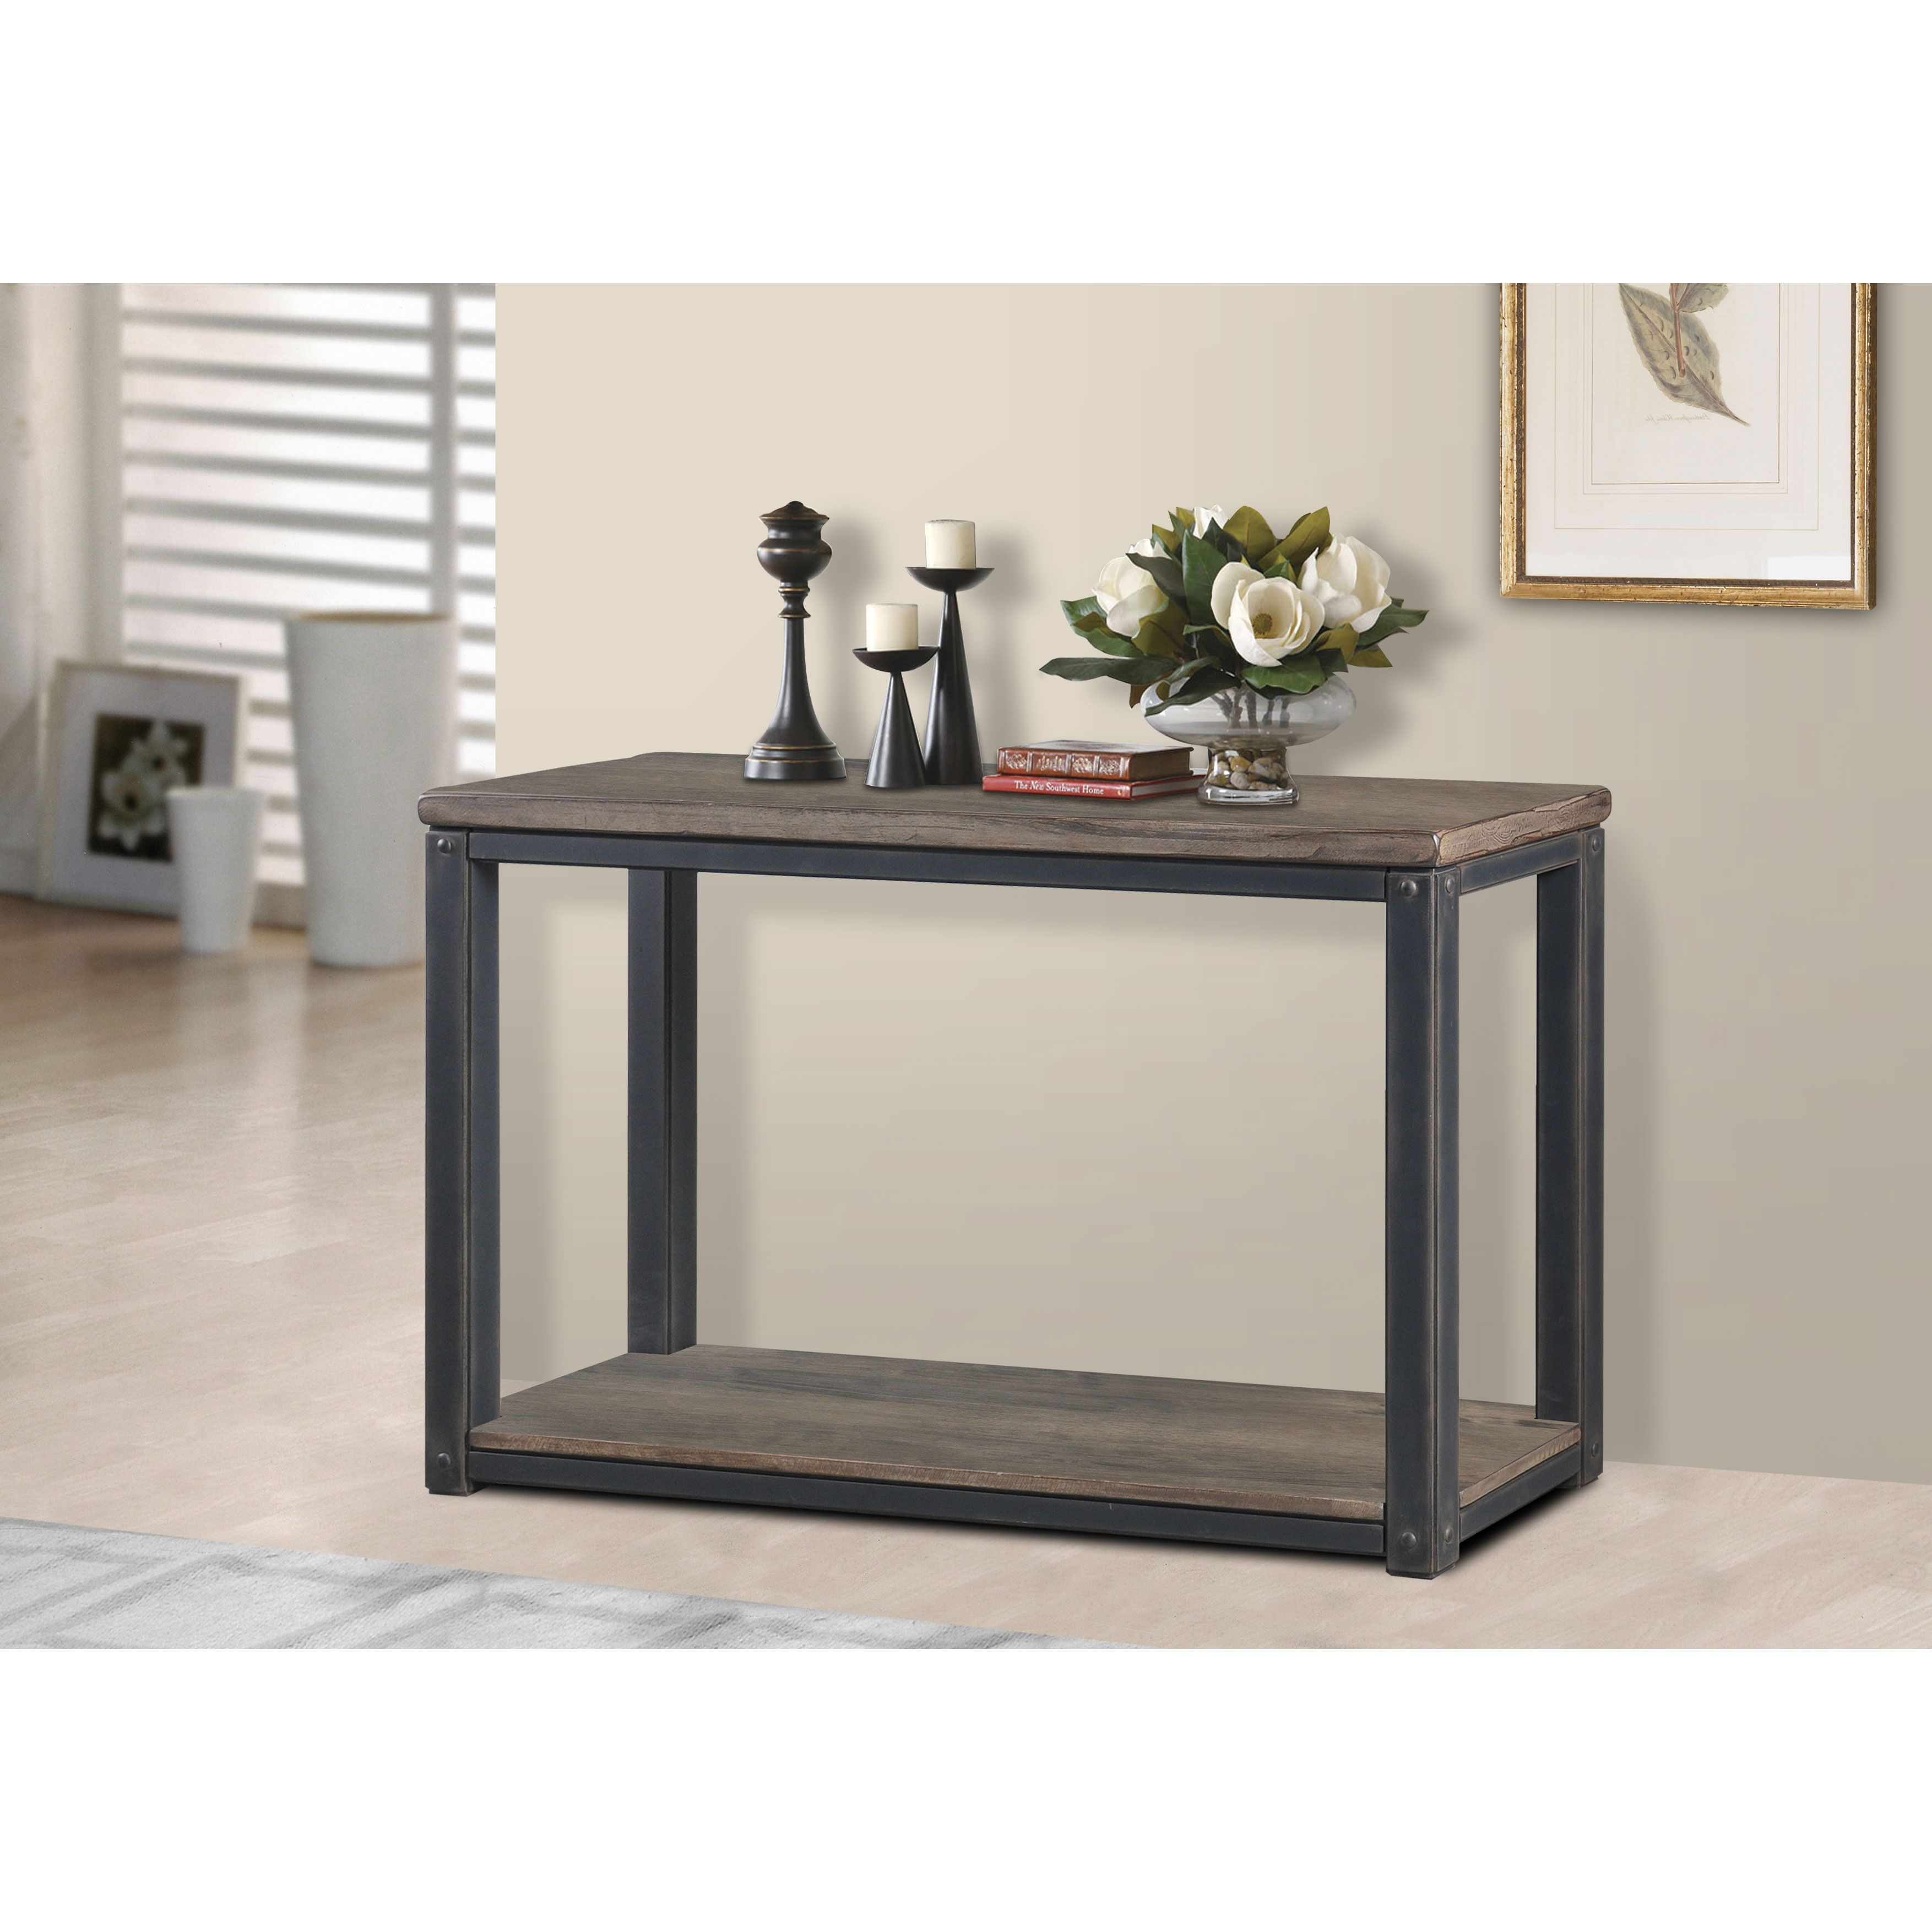 rustic gray sofa table chesterfield sofas for sale this features a metal frame with